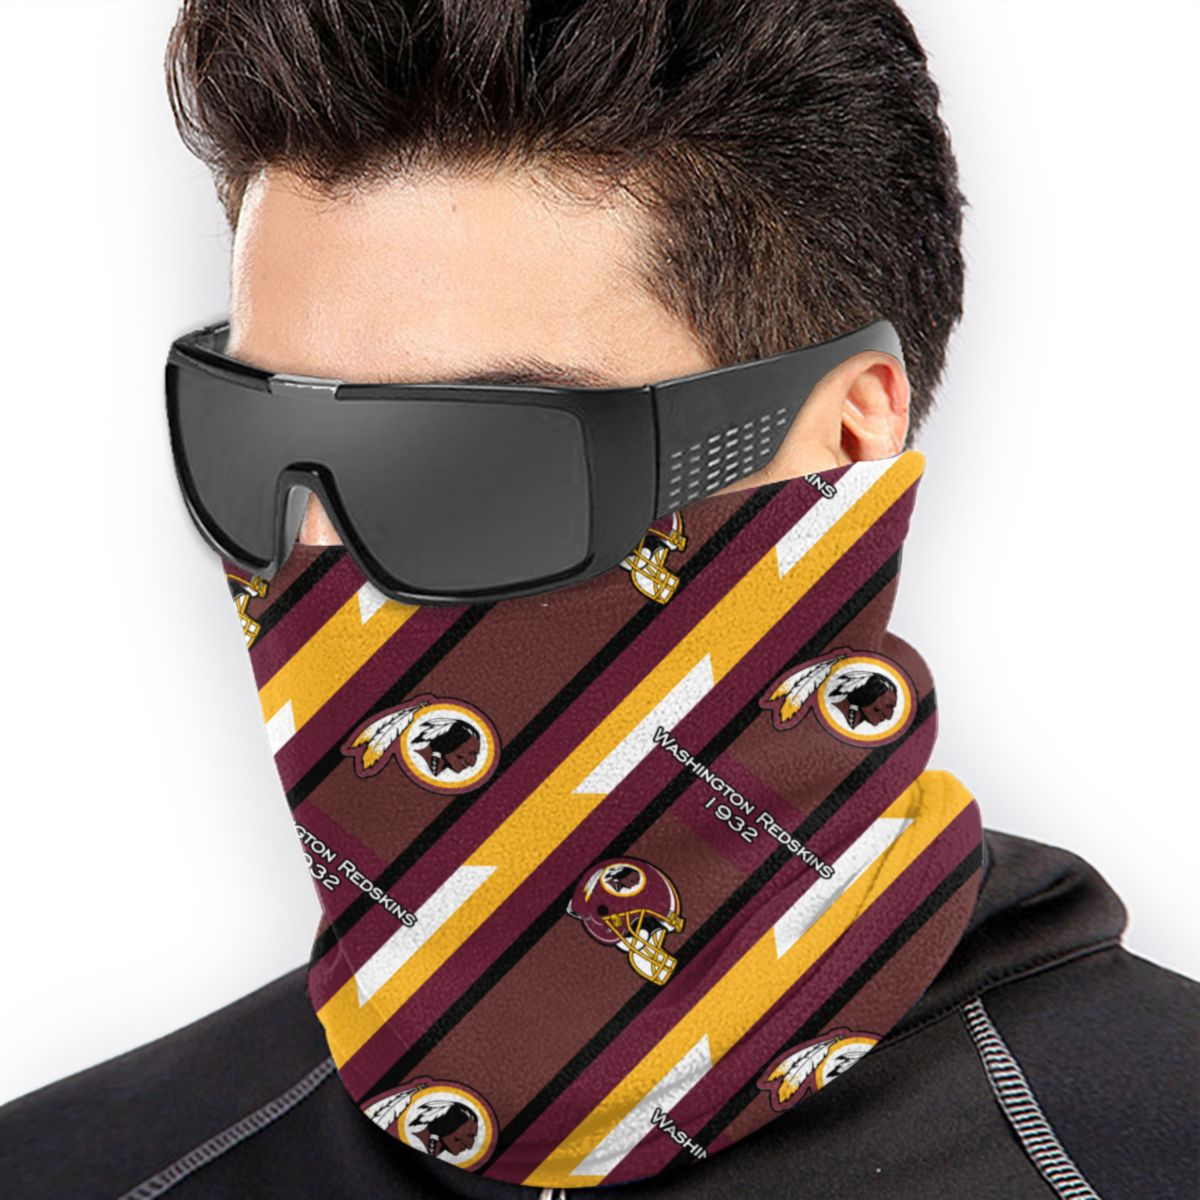 Washington Redskins Washington Redskins Neck Warmer Scarf Bandana Face Mask Protection